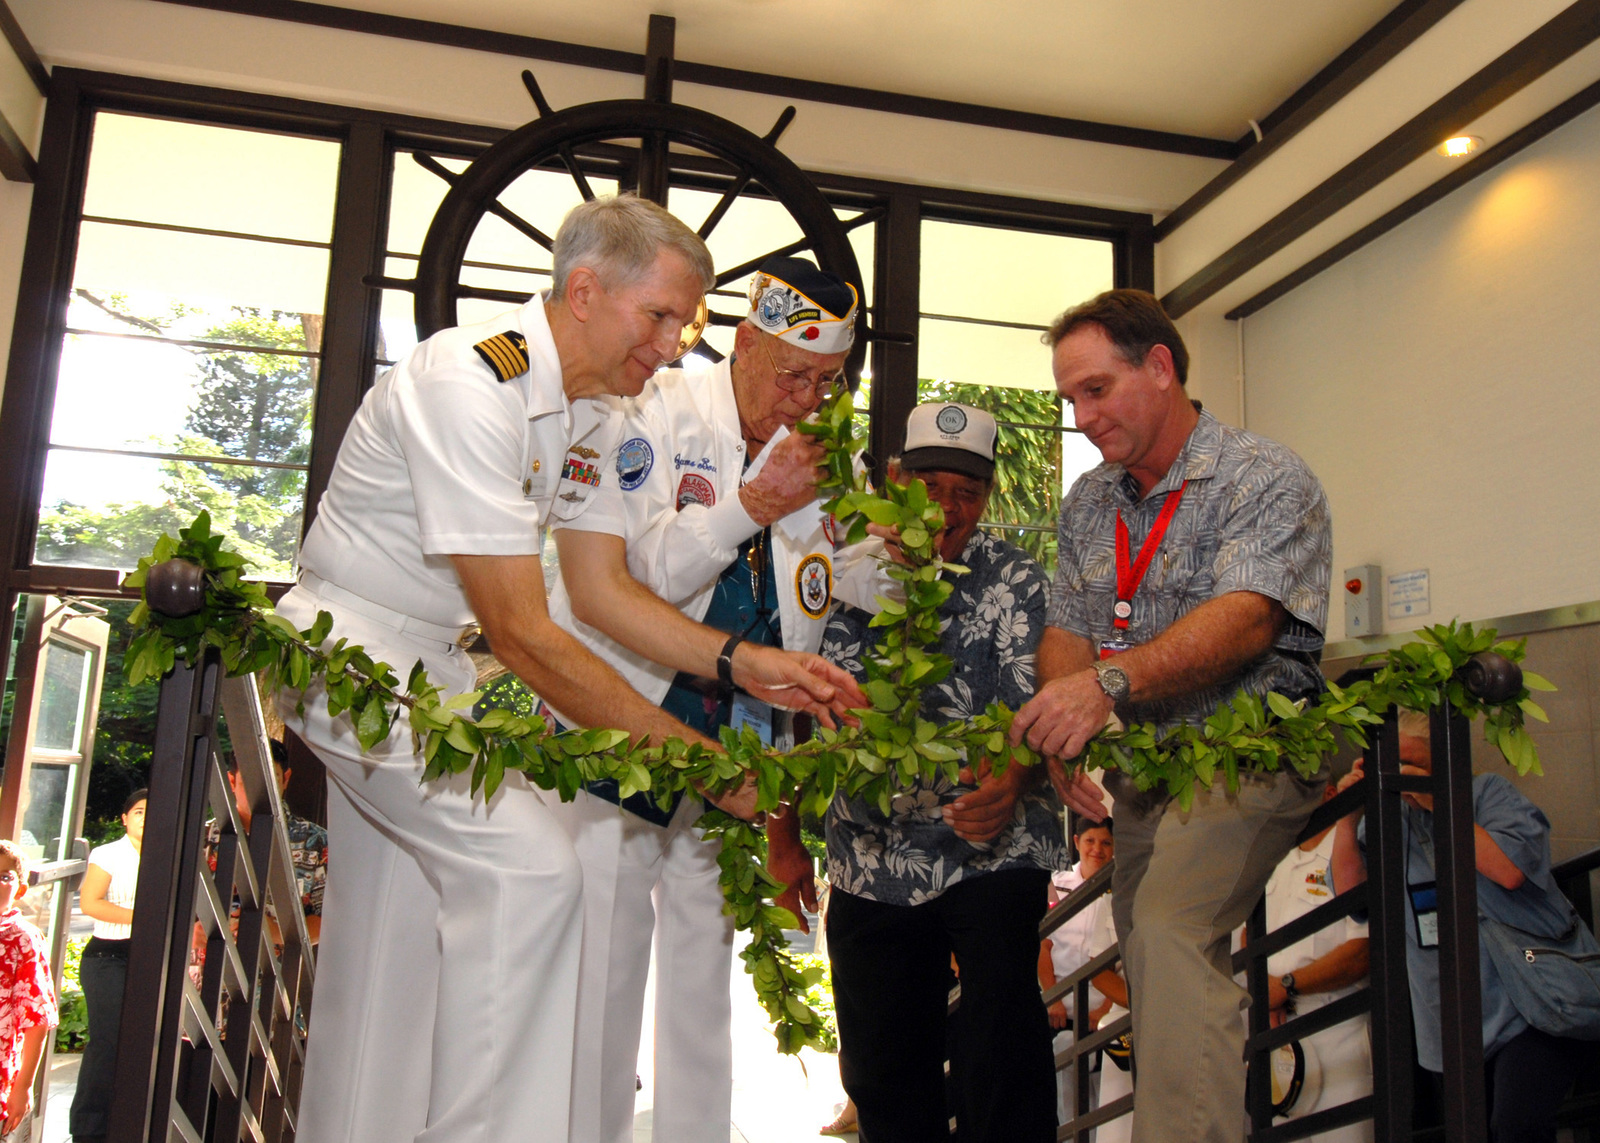 U.S. Navy CAPT. Frank J. Camelio, Commander of Pearl Harbor Naval Shipyard and Intermediate Maintenance Facility, USS OKLAHOMA survivor James Bounds, Thomas Ackerman, naval facilities foreman and Bill Sullivan, Structural Superintendent for Pearl Harbor Naval Shipyard perform the traditional Hawaiian untying of the lei, on Dec. 6, 2006, during the Pearl Harbor Naval Shipyard's USS OKLAHOMA Lobby Display Dedication ceremony at Naval Station Pearl Harbor, Hawaii. The renovation and dedication honors the historic tie between the Pearl Harbor Shipyard workers who aided in the rescue of 32 Sailors from the capsized ship in the days following Dec. 7, 1941. (U.S. Navy PHOTO by Mass...